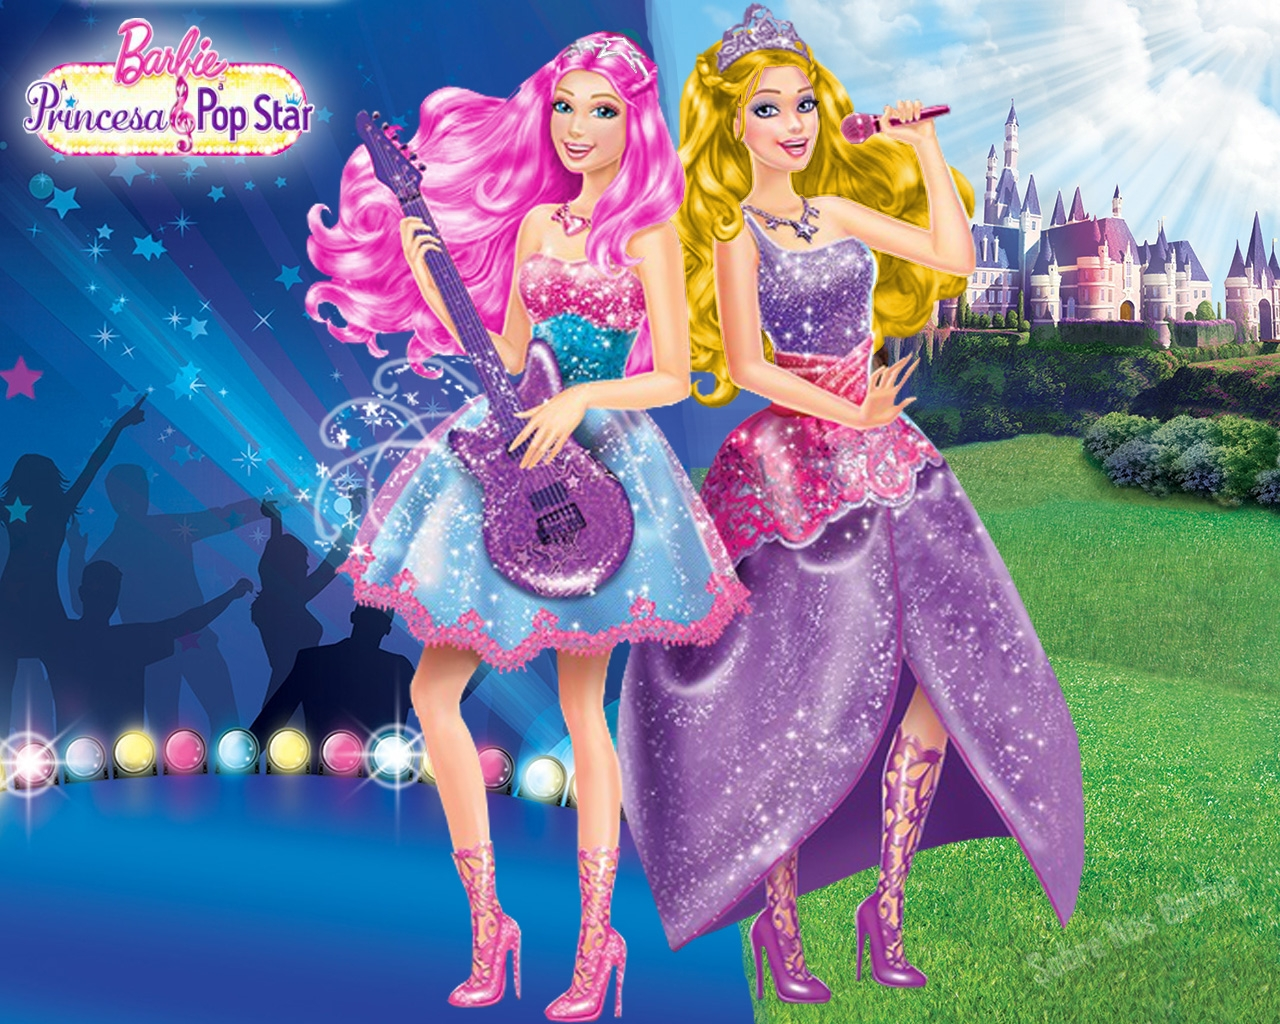 ... Princess and the popstar Barbie the Princess and the Popstar Wallpaper